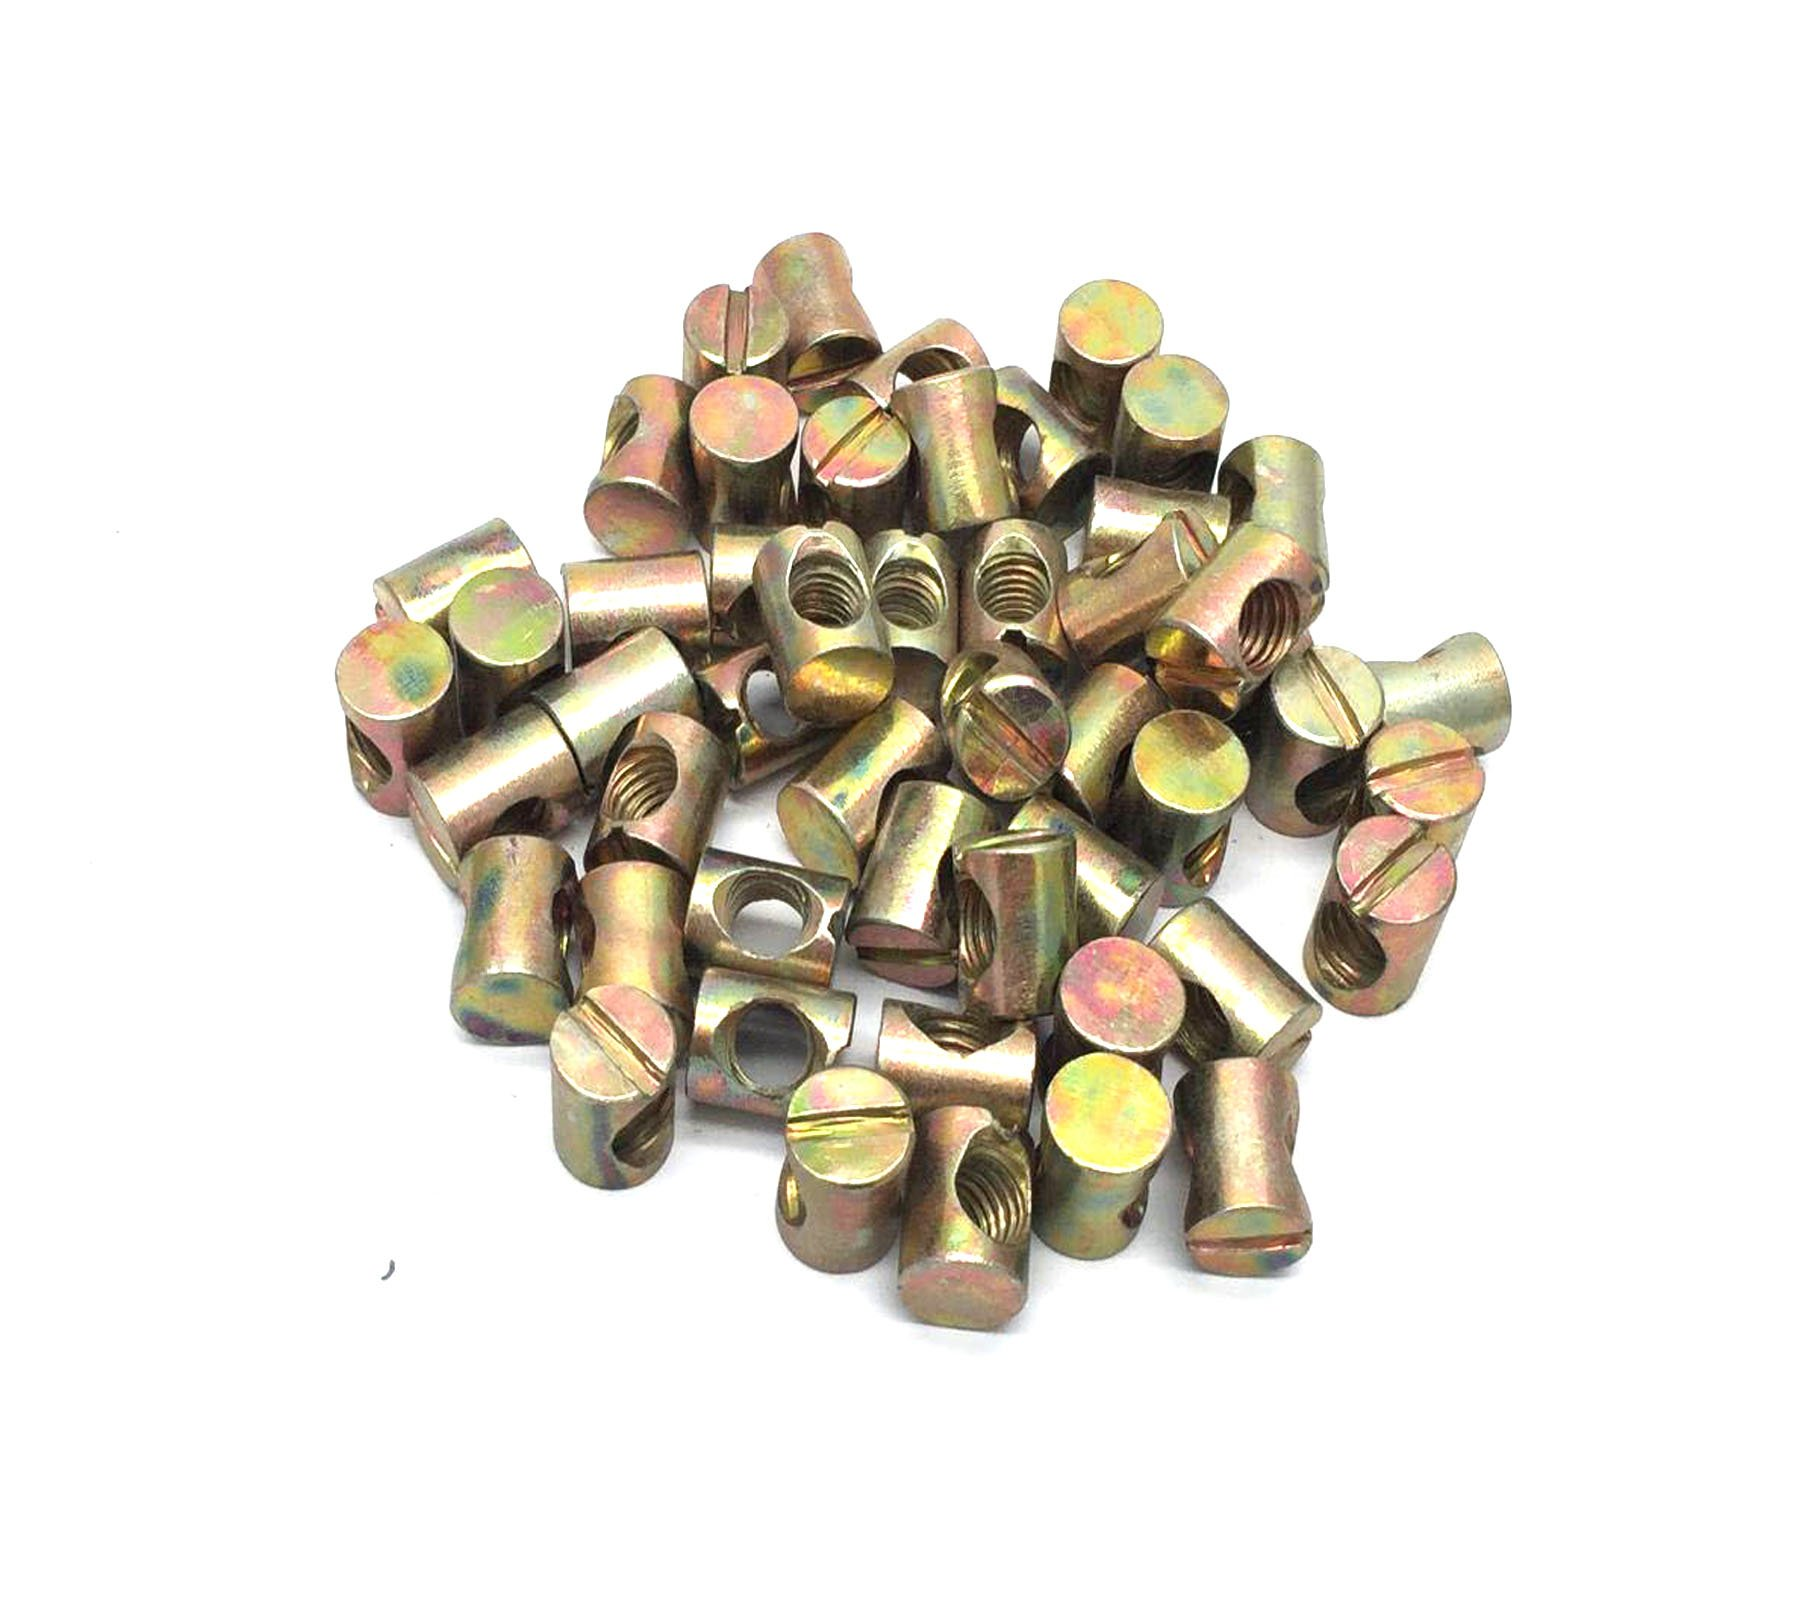 Antrader 50pcs Metric M8 x15 Barrel Nuts Cross Dowels Slotted Head Furniture Nuts for Cots Beds Crib Chairs